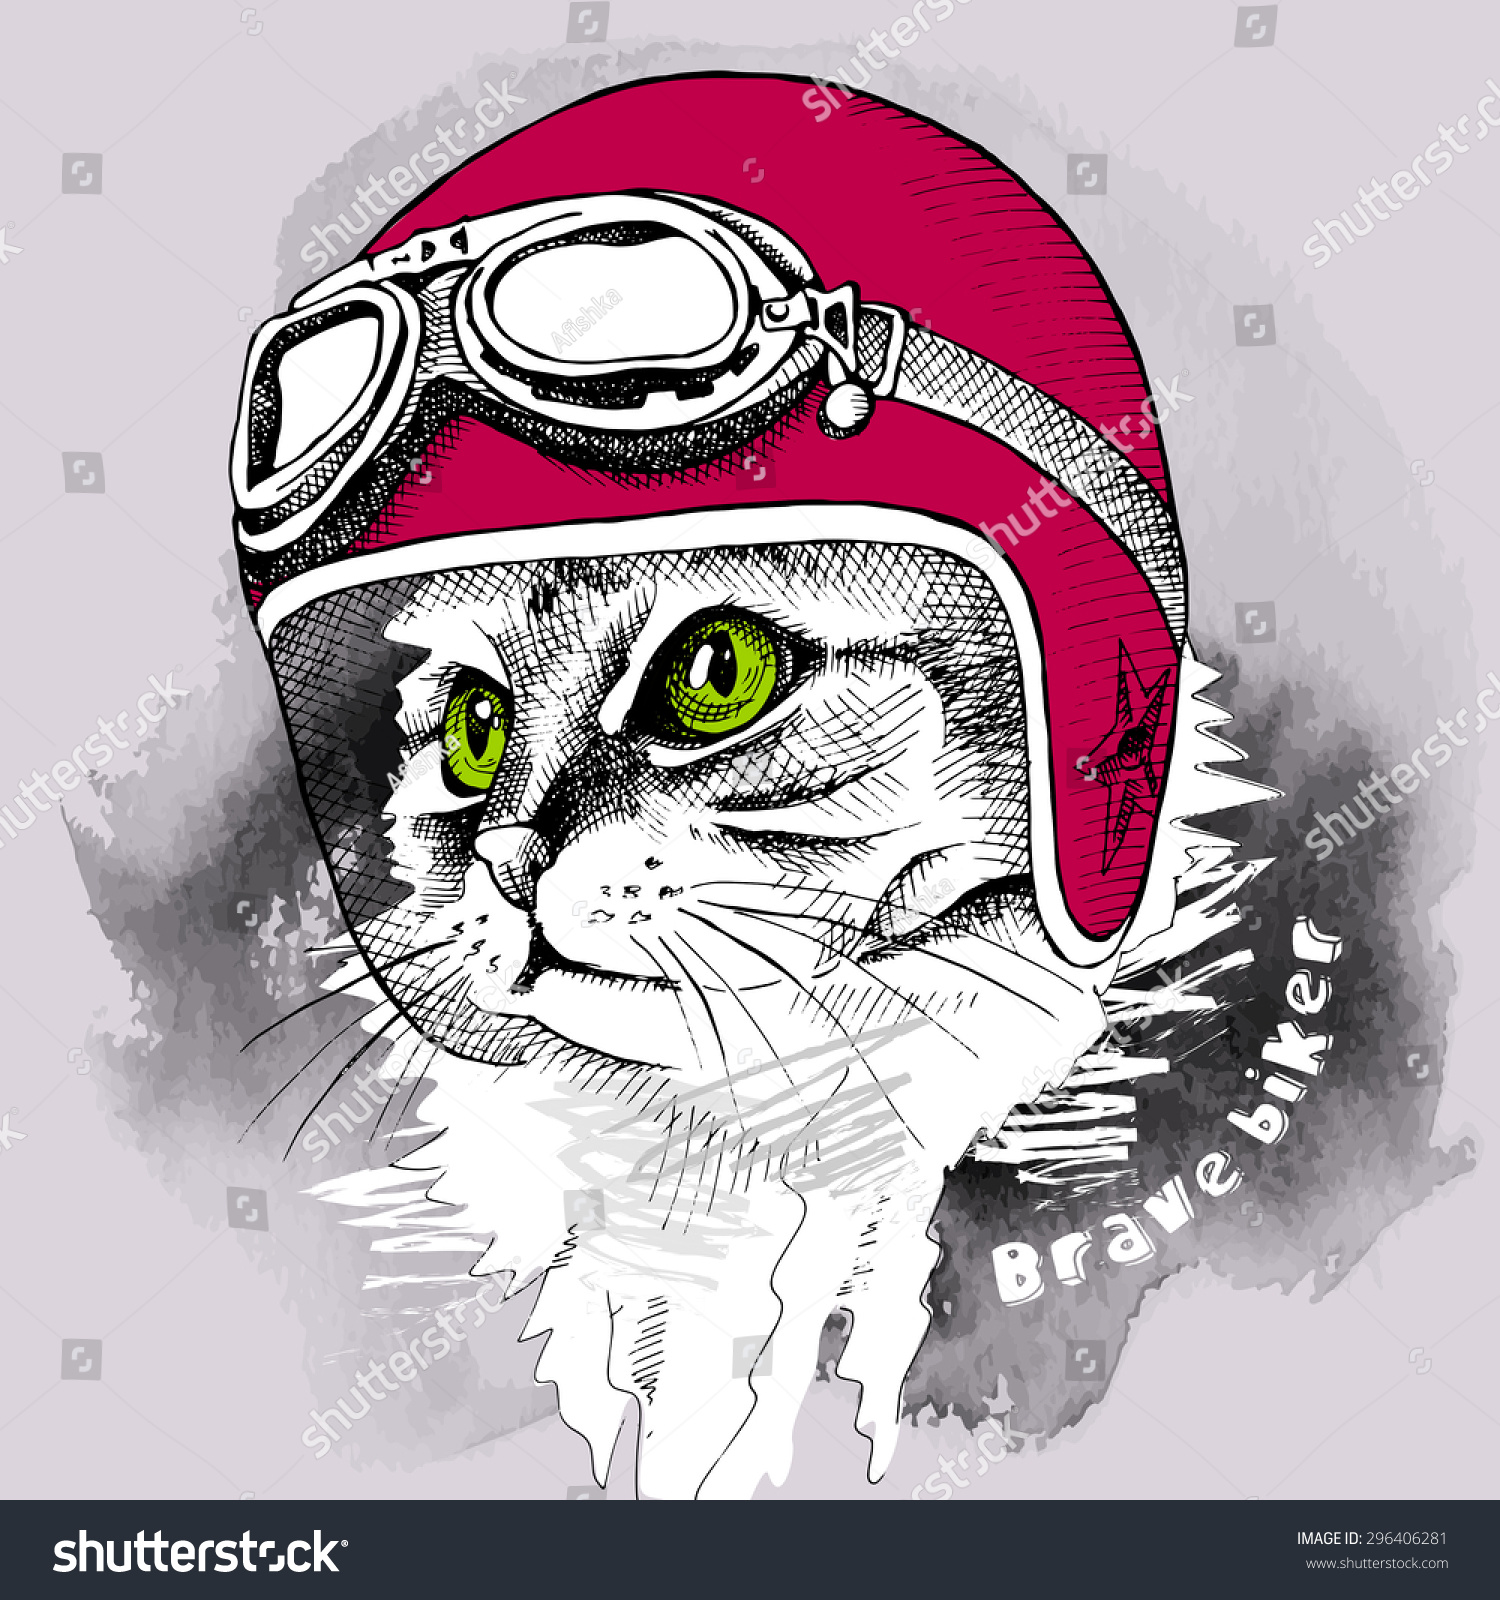 Image Cat Portrait Retro Motorcycle Helmet Stock Vector ...